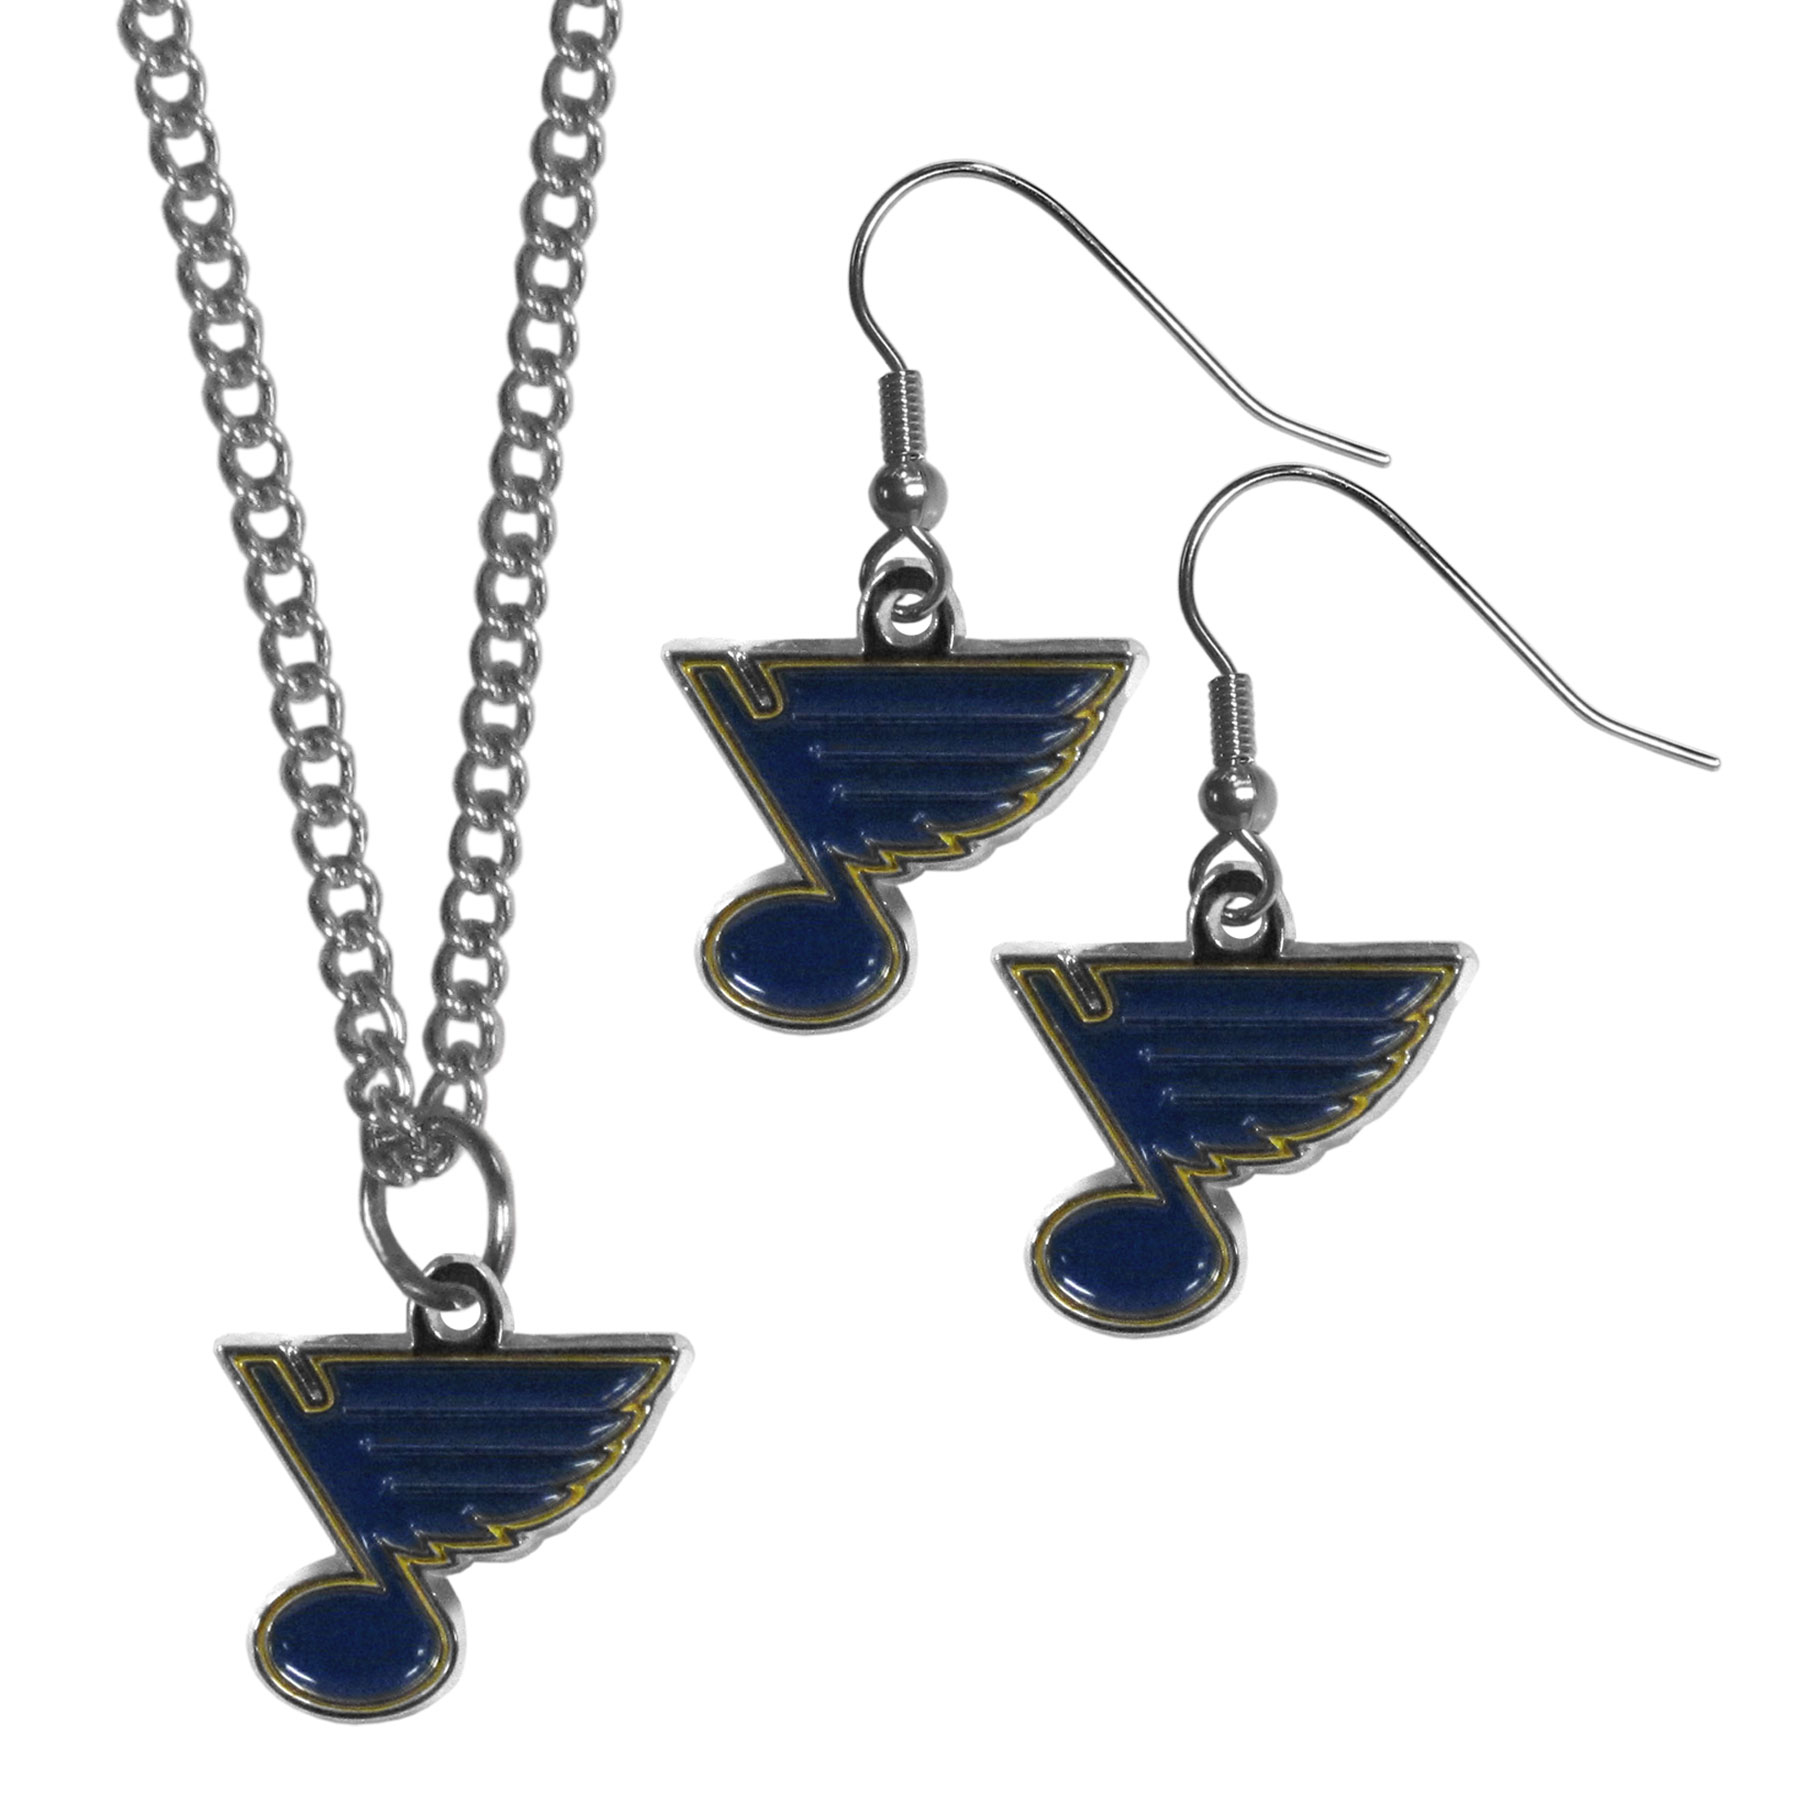 St. Louis Blues® Dangle Earrings and Chain Necklace Set - This classic jewelry set contains are most popular St. Louis Blues® dangle earrings and 22 inch chain necklace. The trendy, dangle earrings are lightweight and feature a fully cast metal team charm with enameled team colors. The matching necklace completes this fashion forward combo and is a spirited set that is perfect for game day but nice enough for everyday.